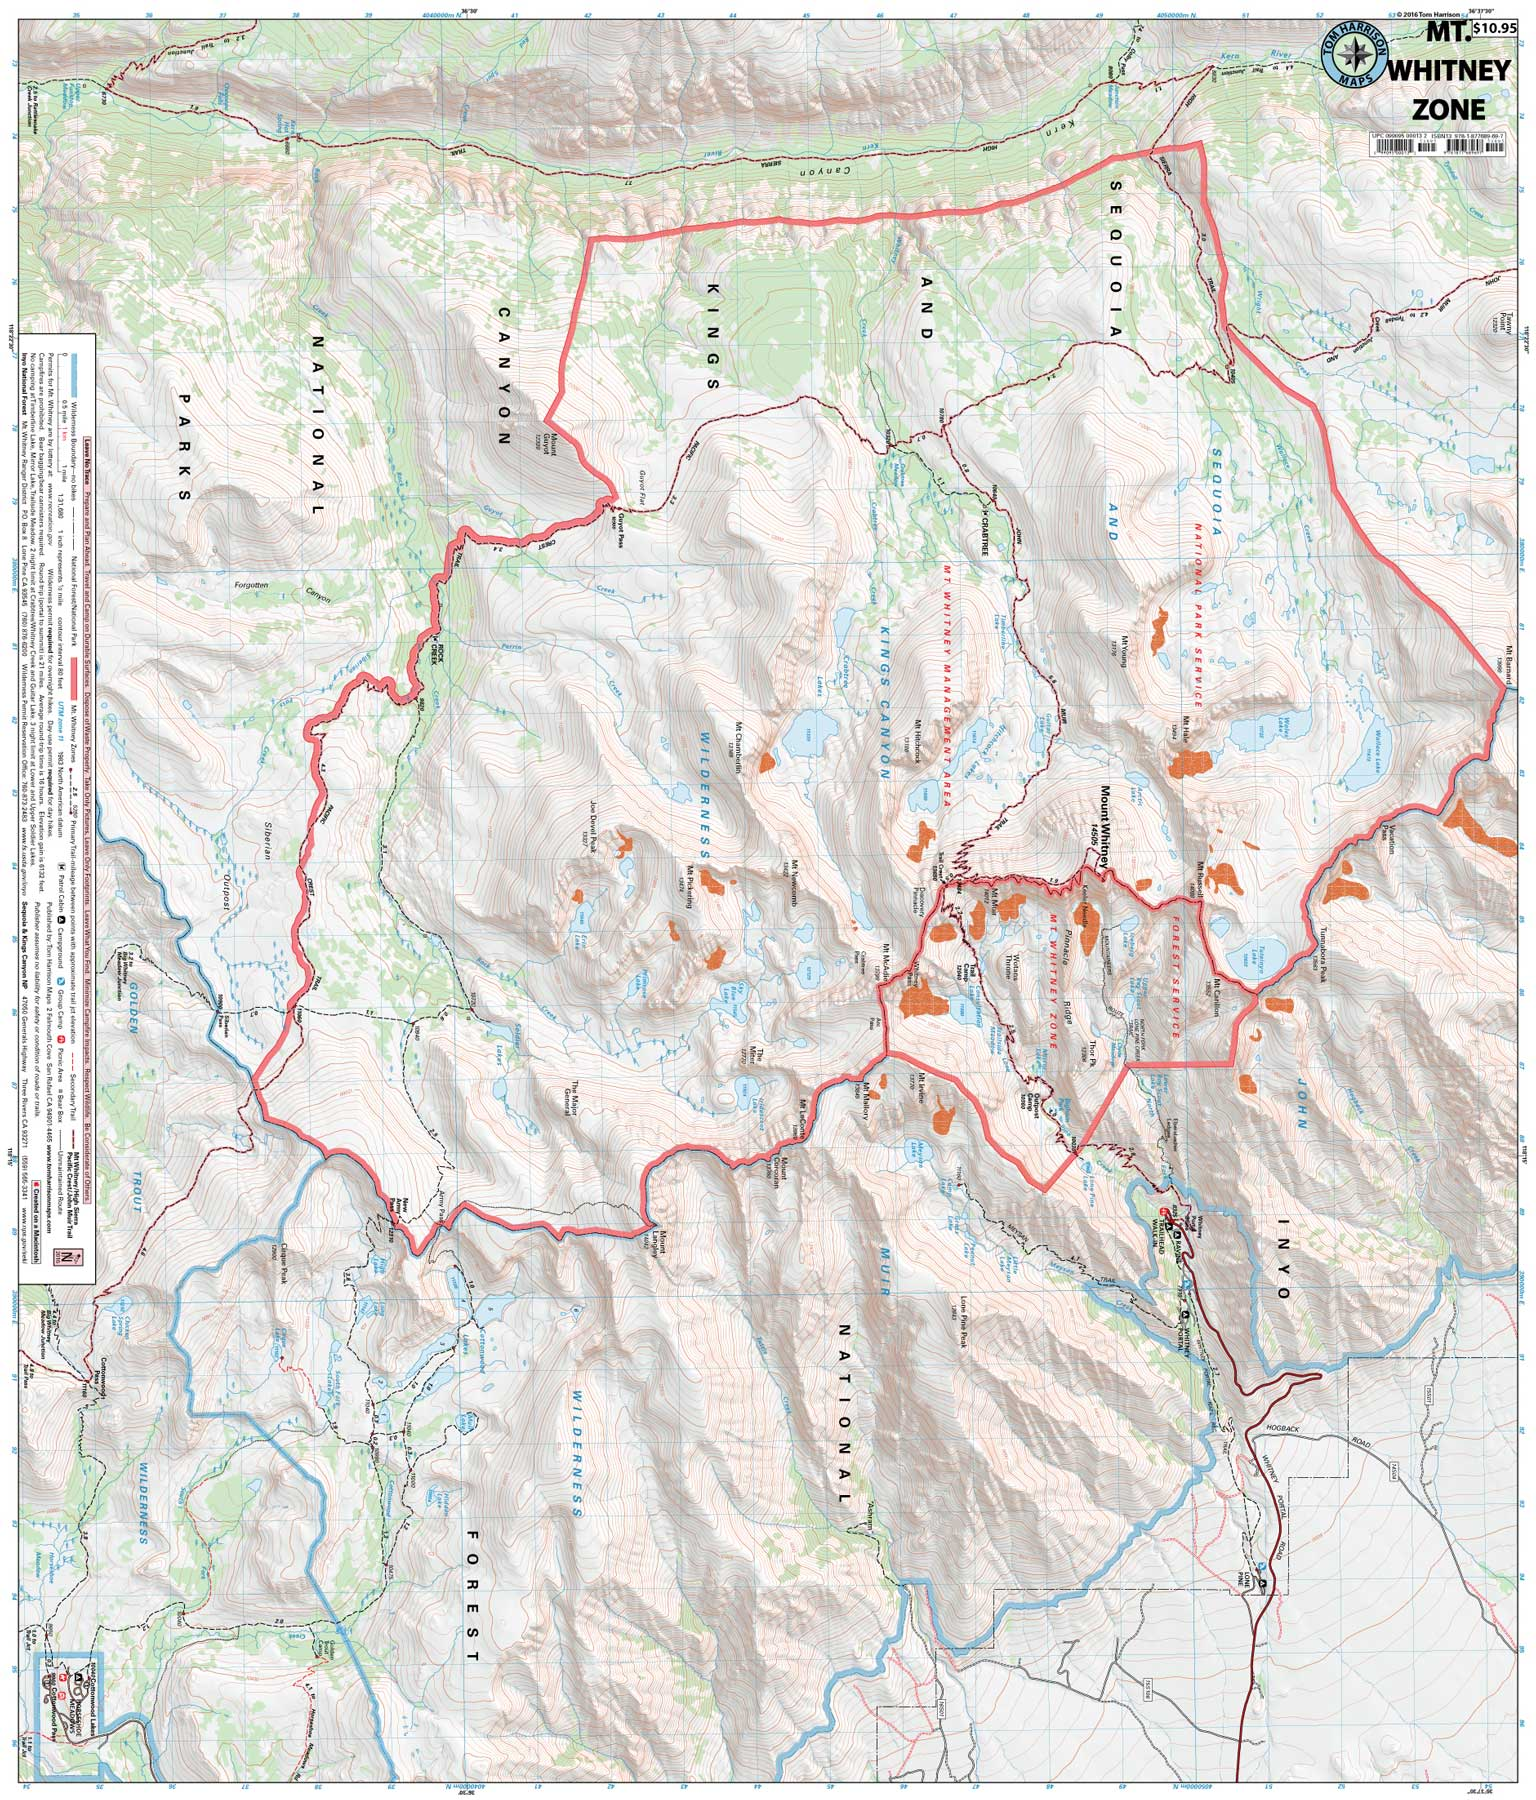 Where Is Mount Whitney On The California Map.Mt Whitney Zone Tom Harrison Maps